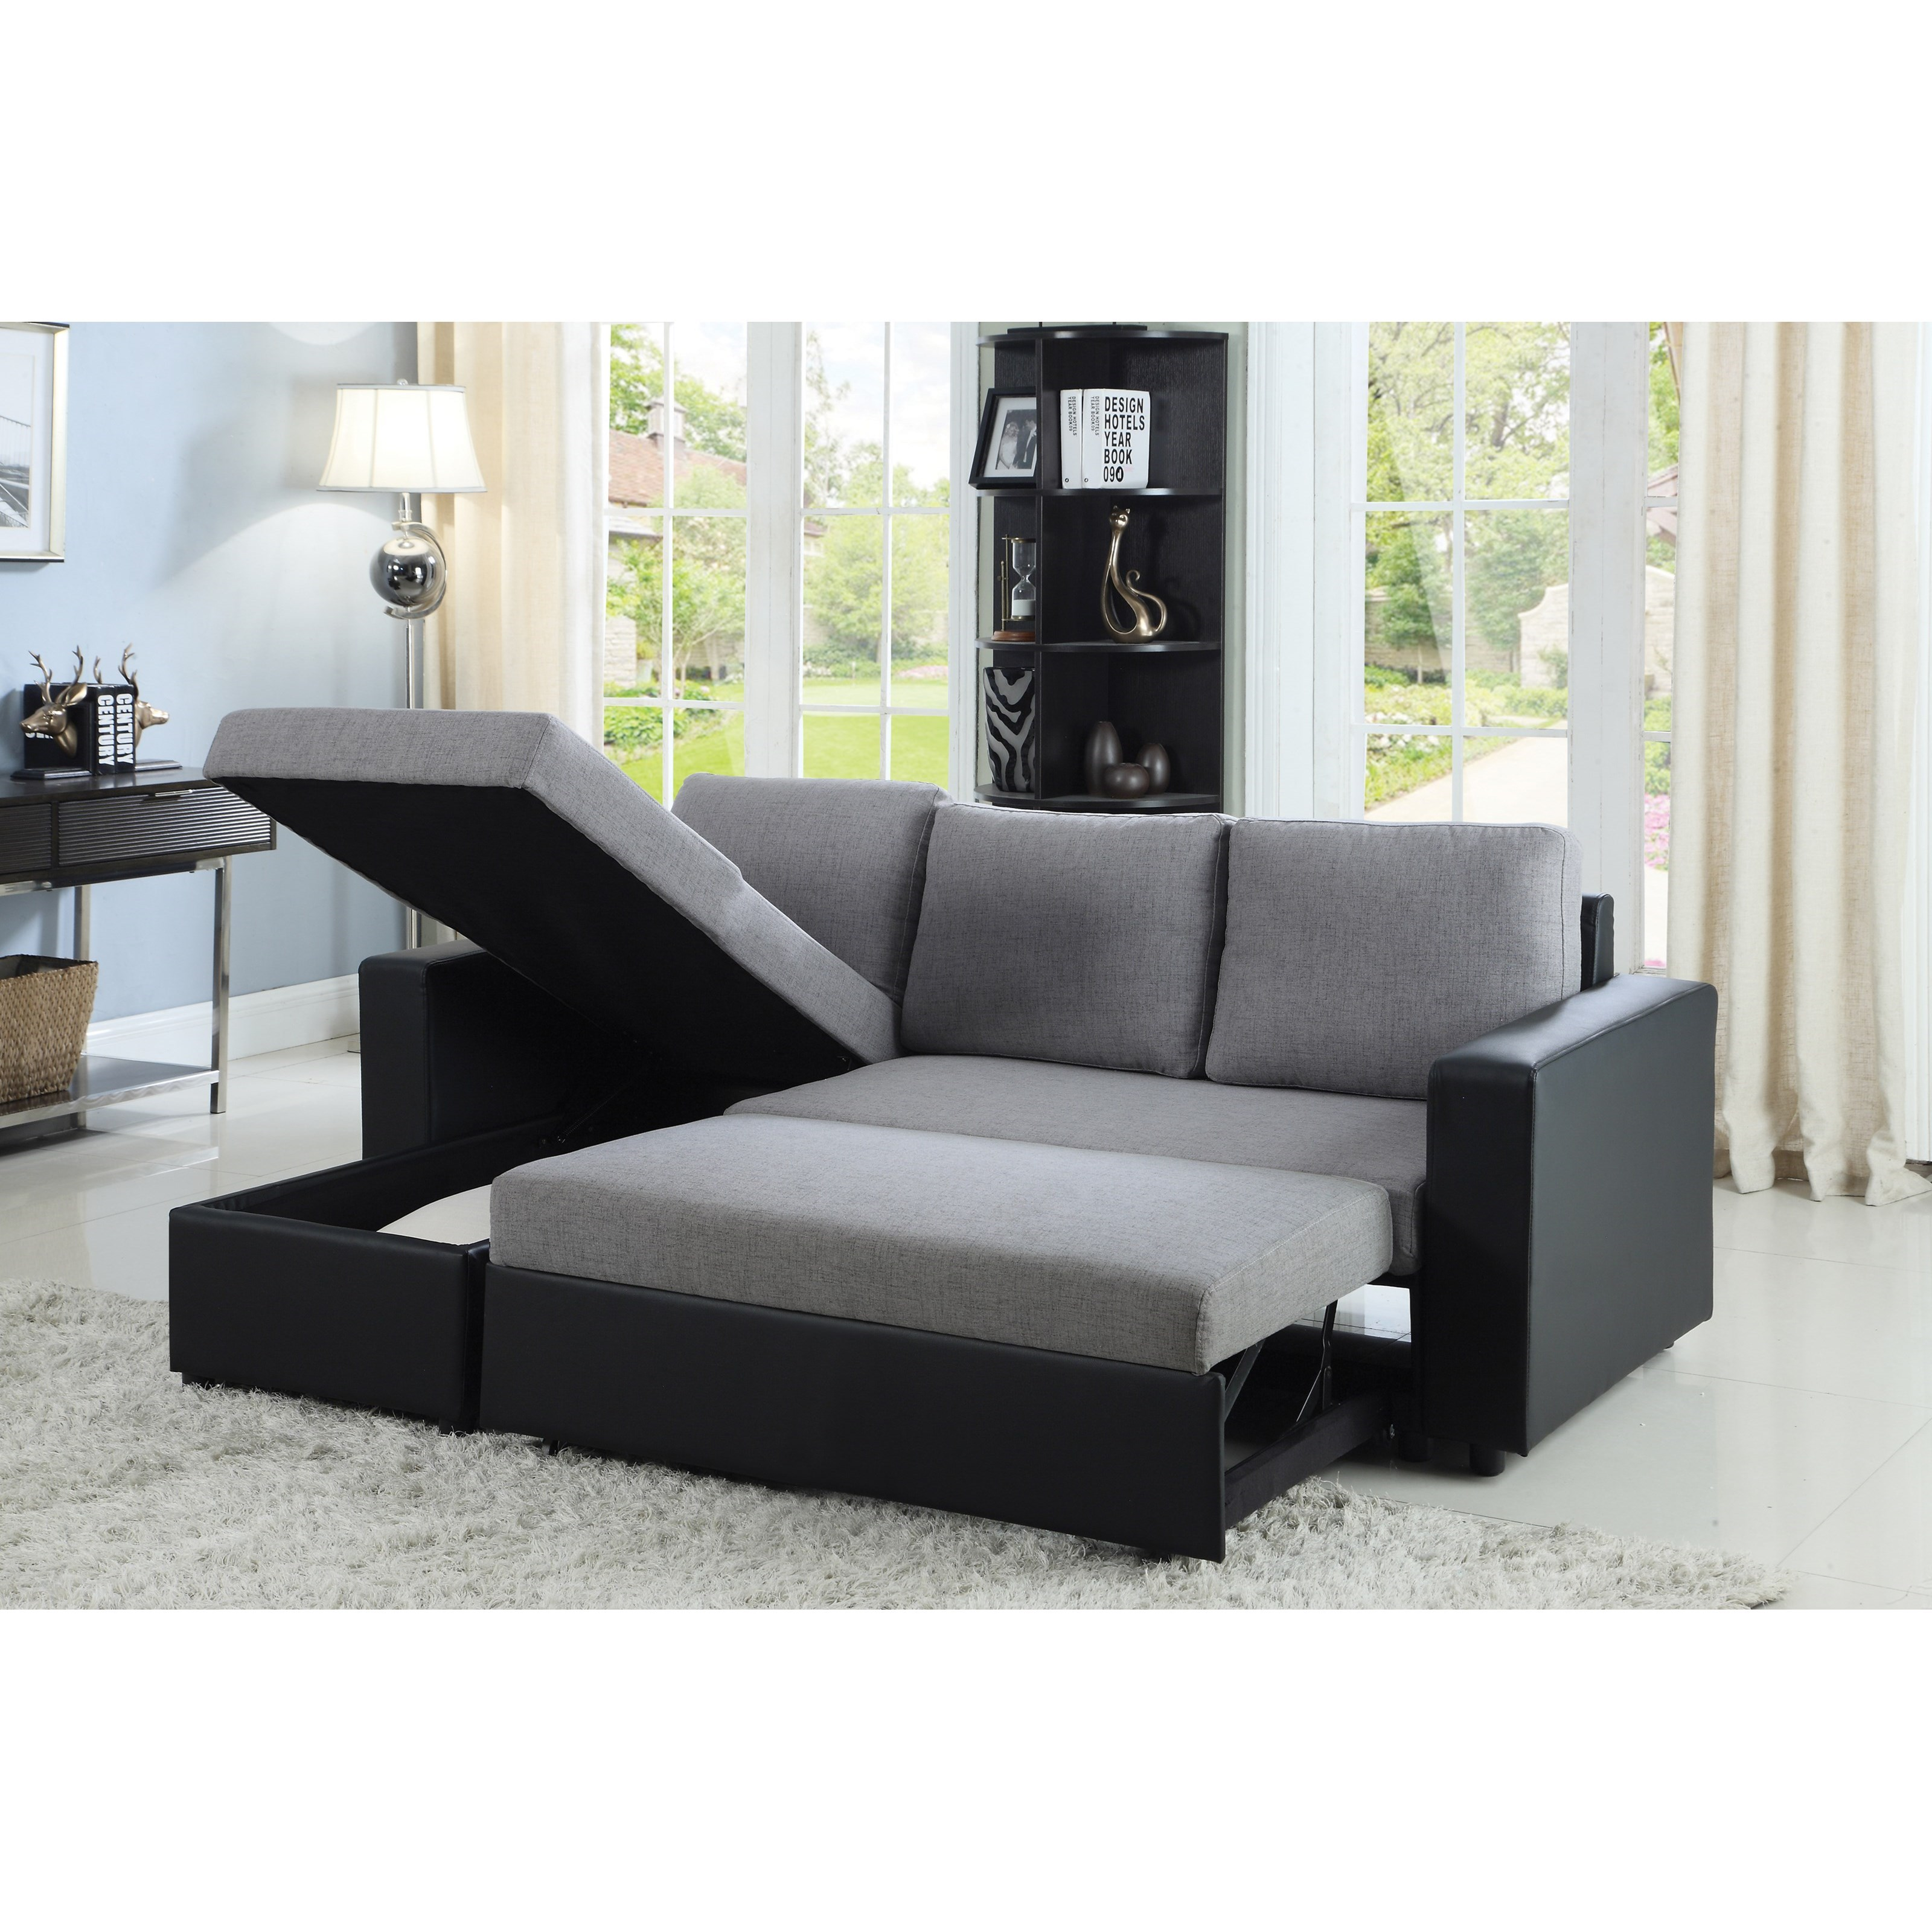 Baylor Sectional Sofa With Chaise And Sleeper Quality Furniture At Affordable Prices In